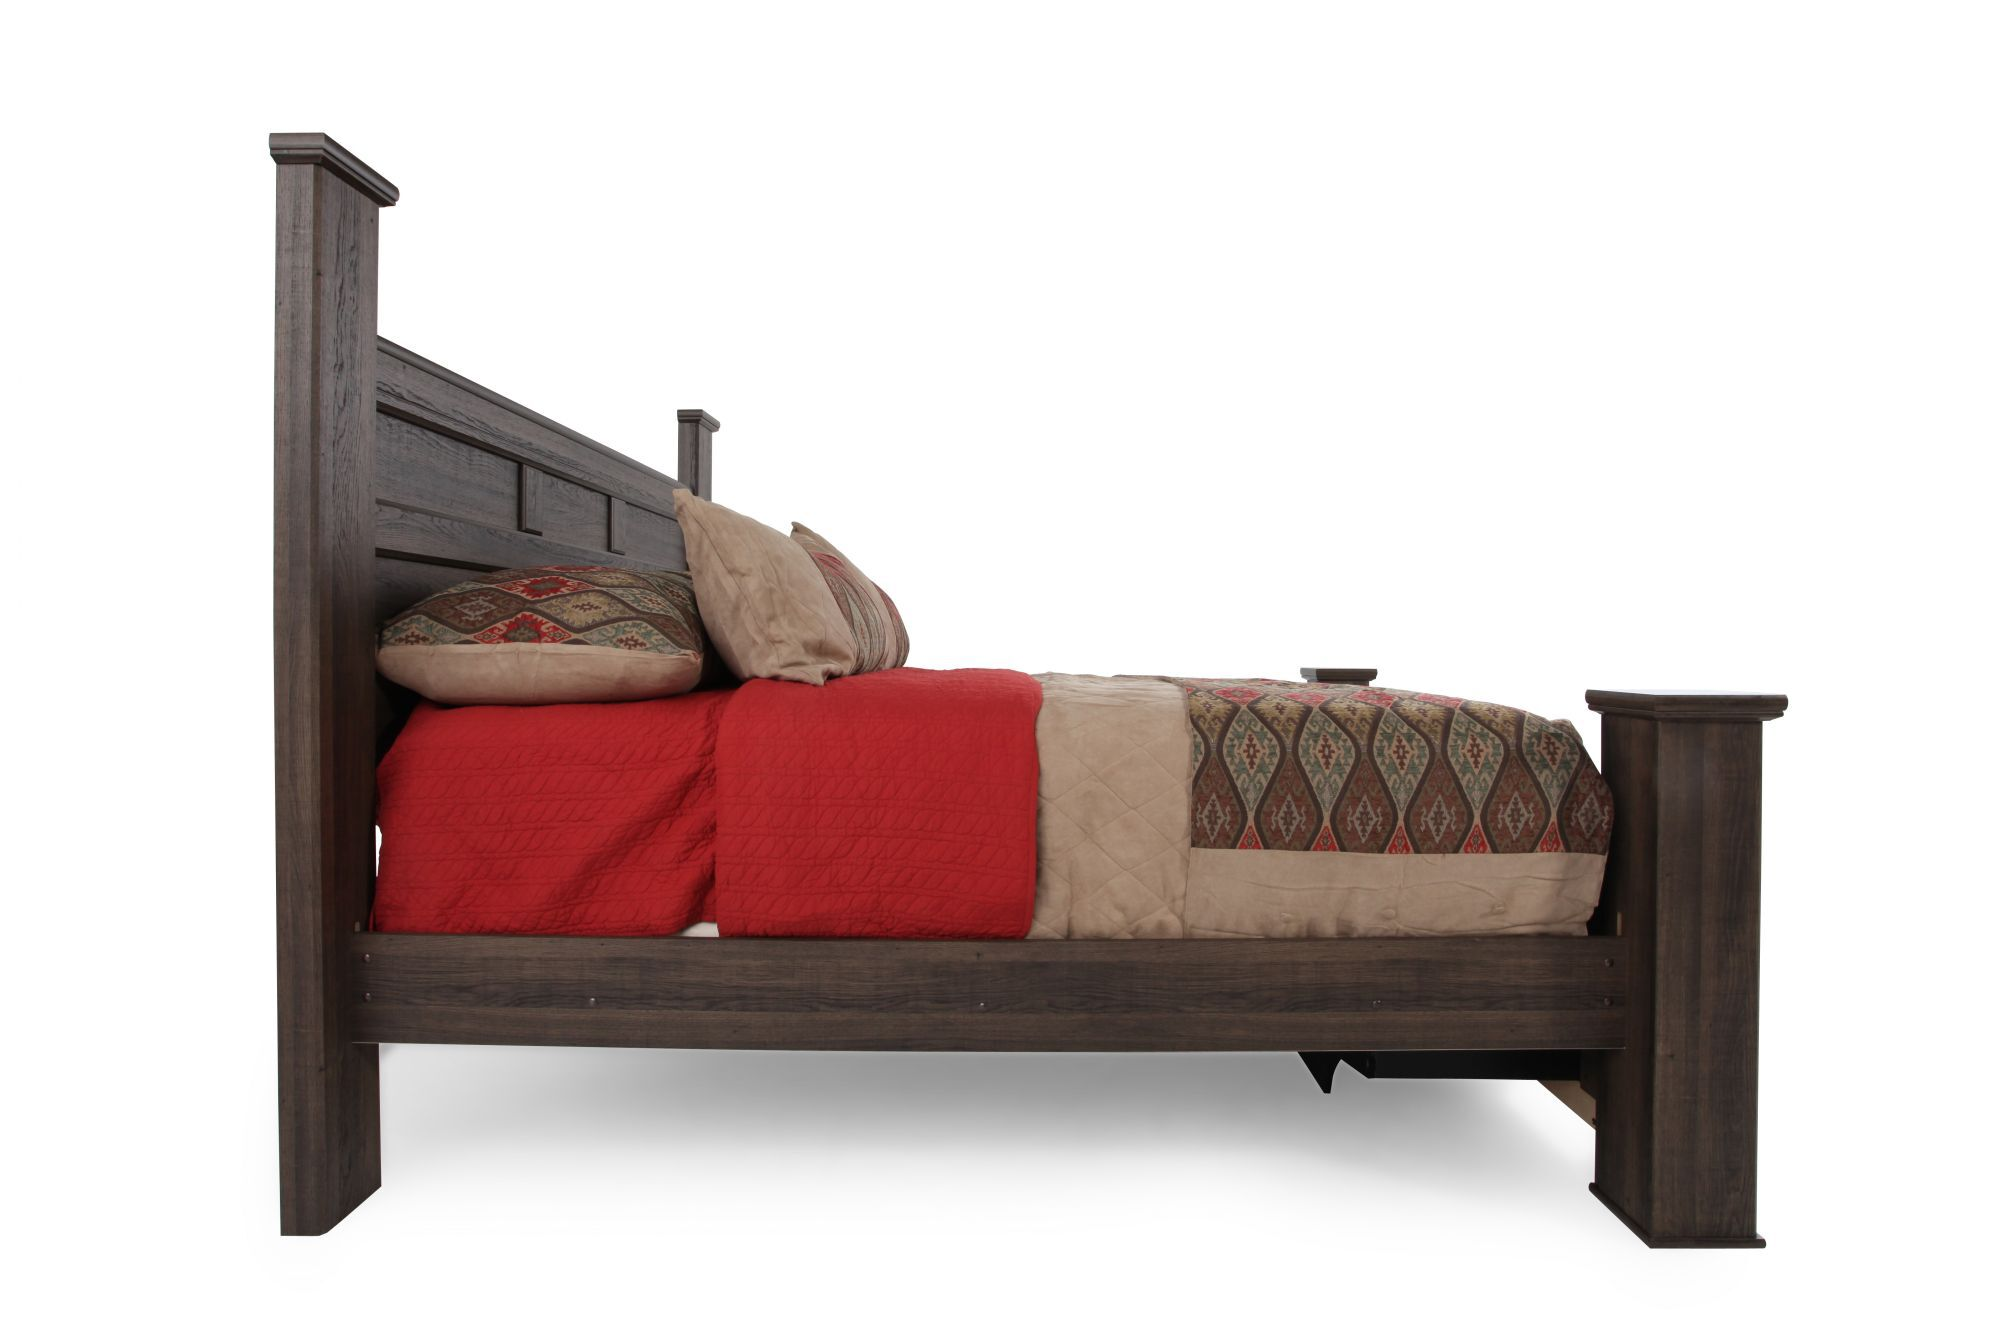 68u0026quot; Planked Two-Drawer Storage Bed in Aged Brown  sc 1 st  Mathis Brothers & 68